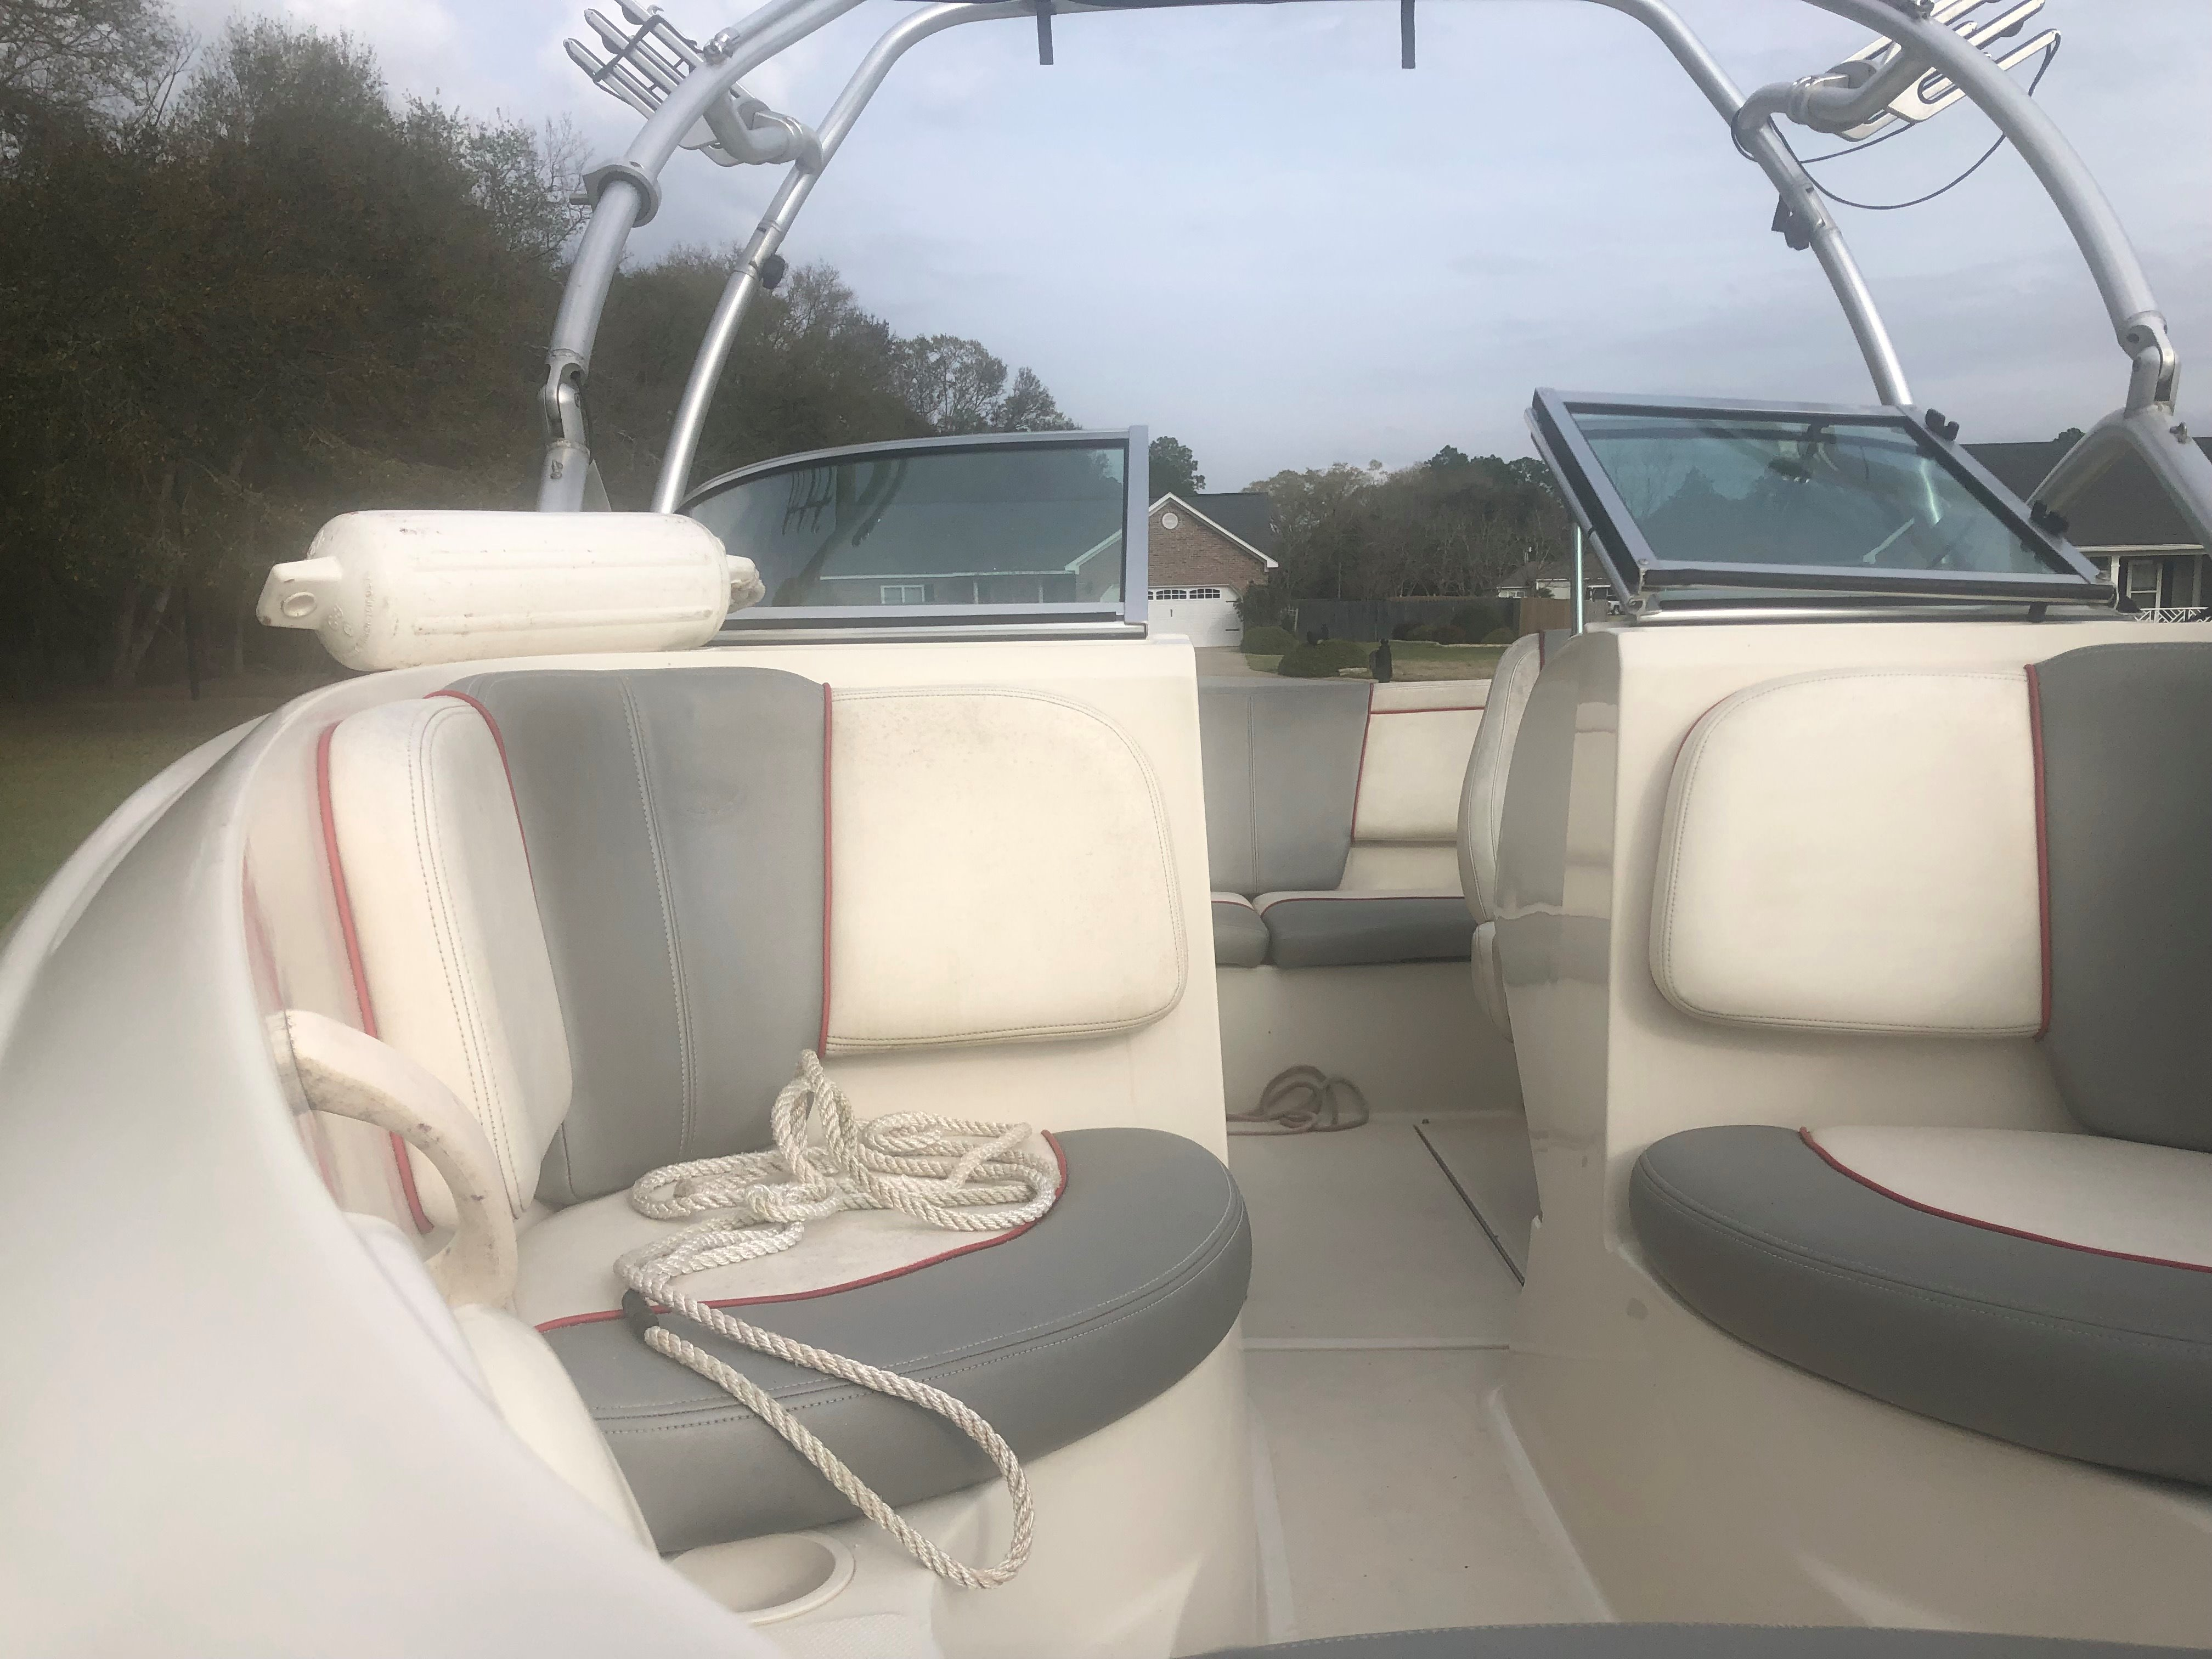 Sea Ray 185 Sport boats for sale in United States - boats com